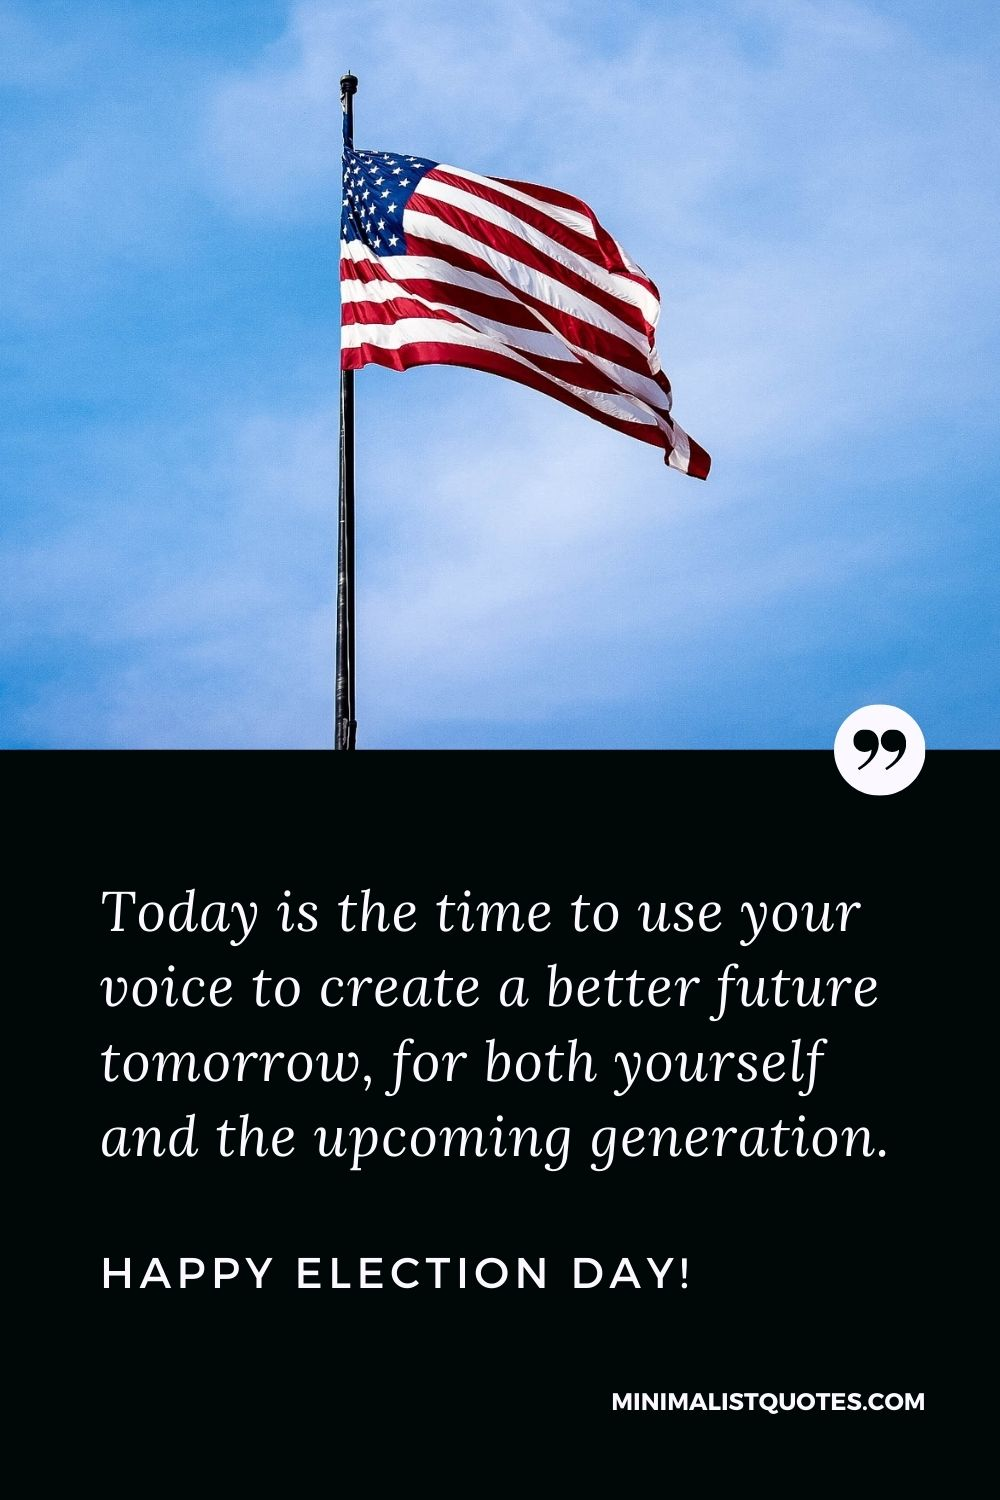 Election Day Quote, Wish & message With Image: Today is the time to use your voice to create a better future tomorrow, for both yourself and the upcoming generation. Happy Election Day!